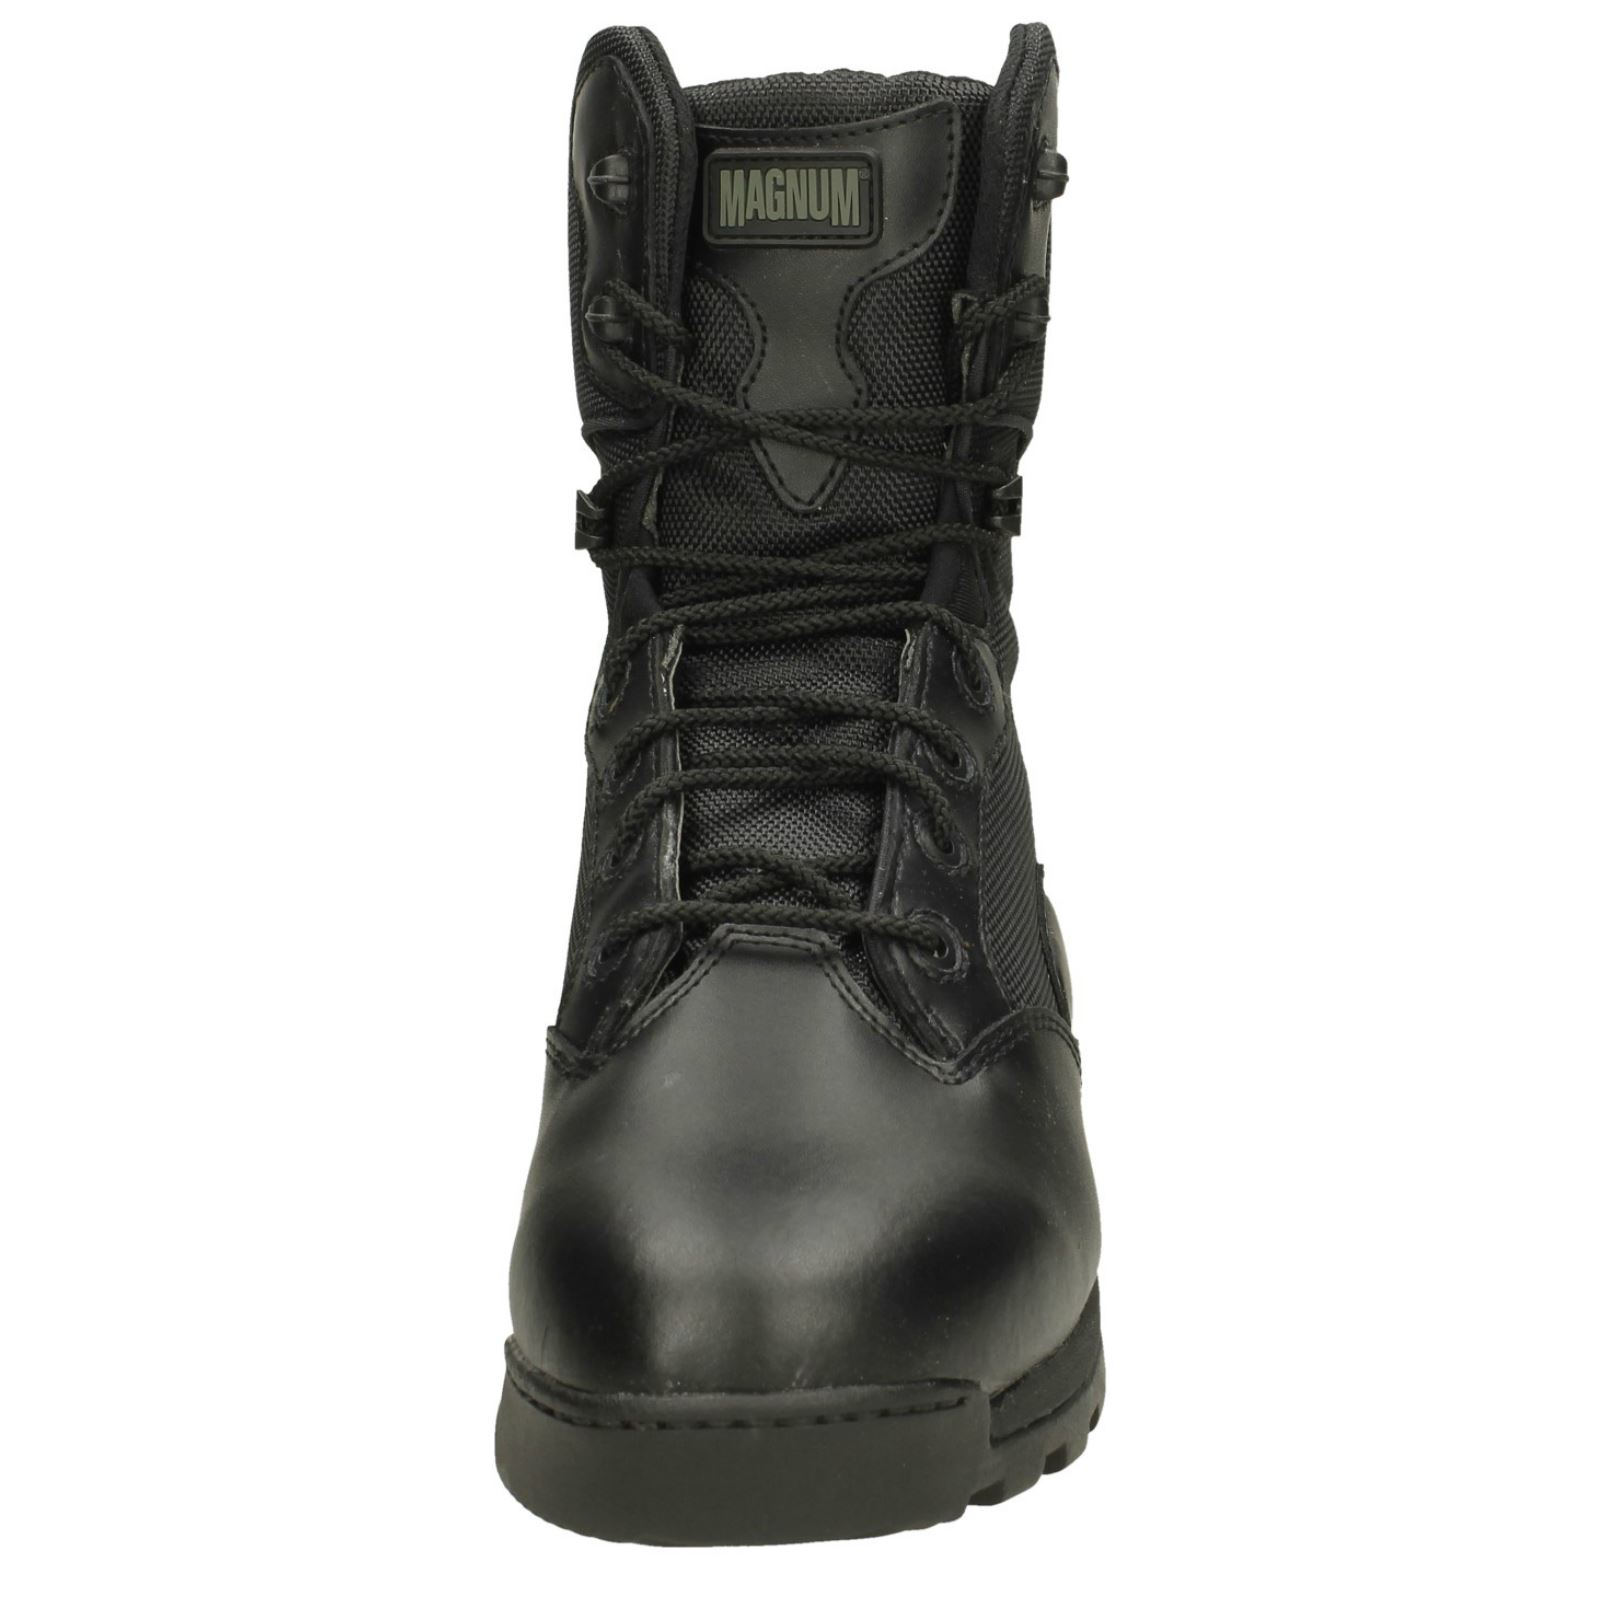 Mens-Magnum-Waterproof-Insulated-Boots-039-Strike-Force-II-039 thumbnail 9